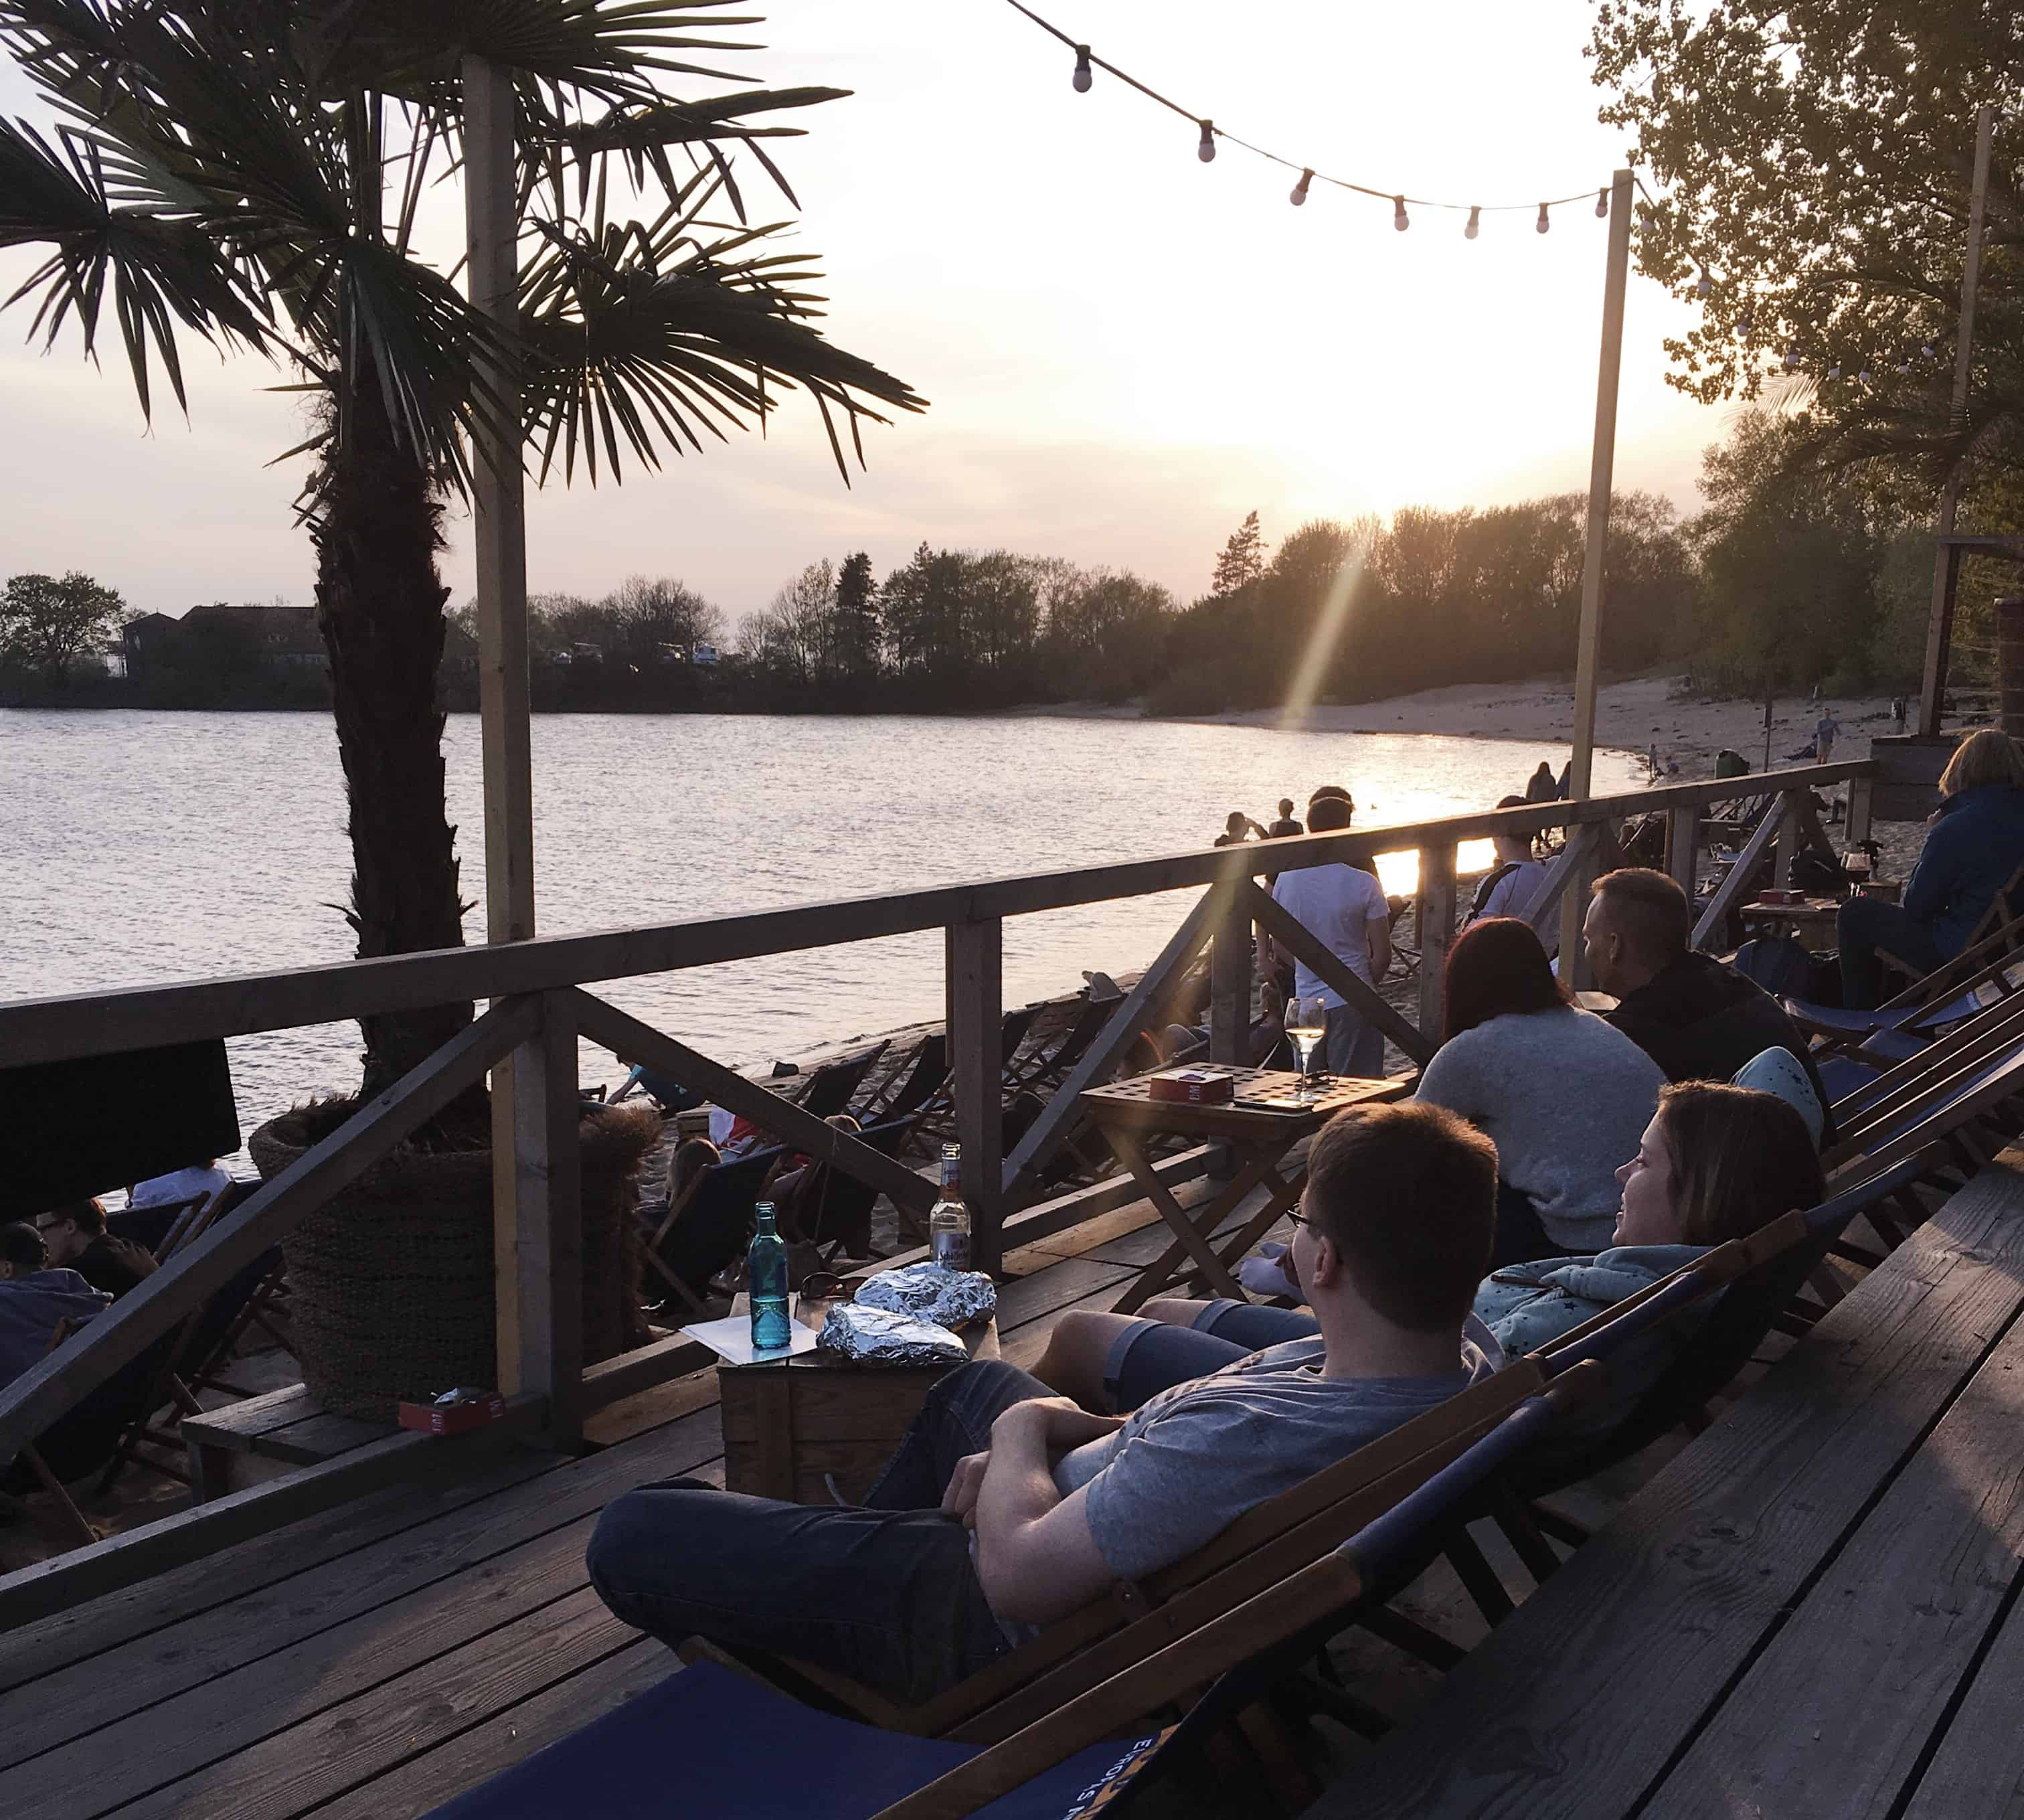 A beach bar in Hamburg, Germany at sunset